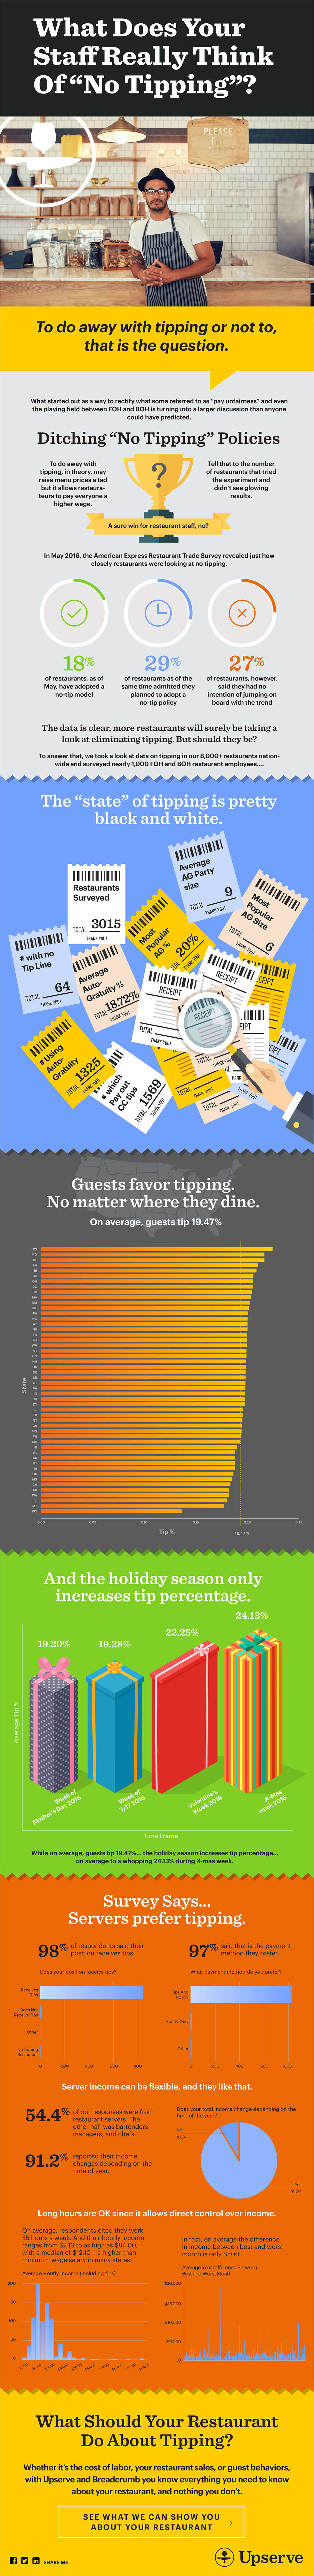 """INFOGRAPHIC: What Does Your Staff Really Think Of """"No Tipping""""?"""